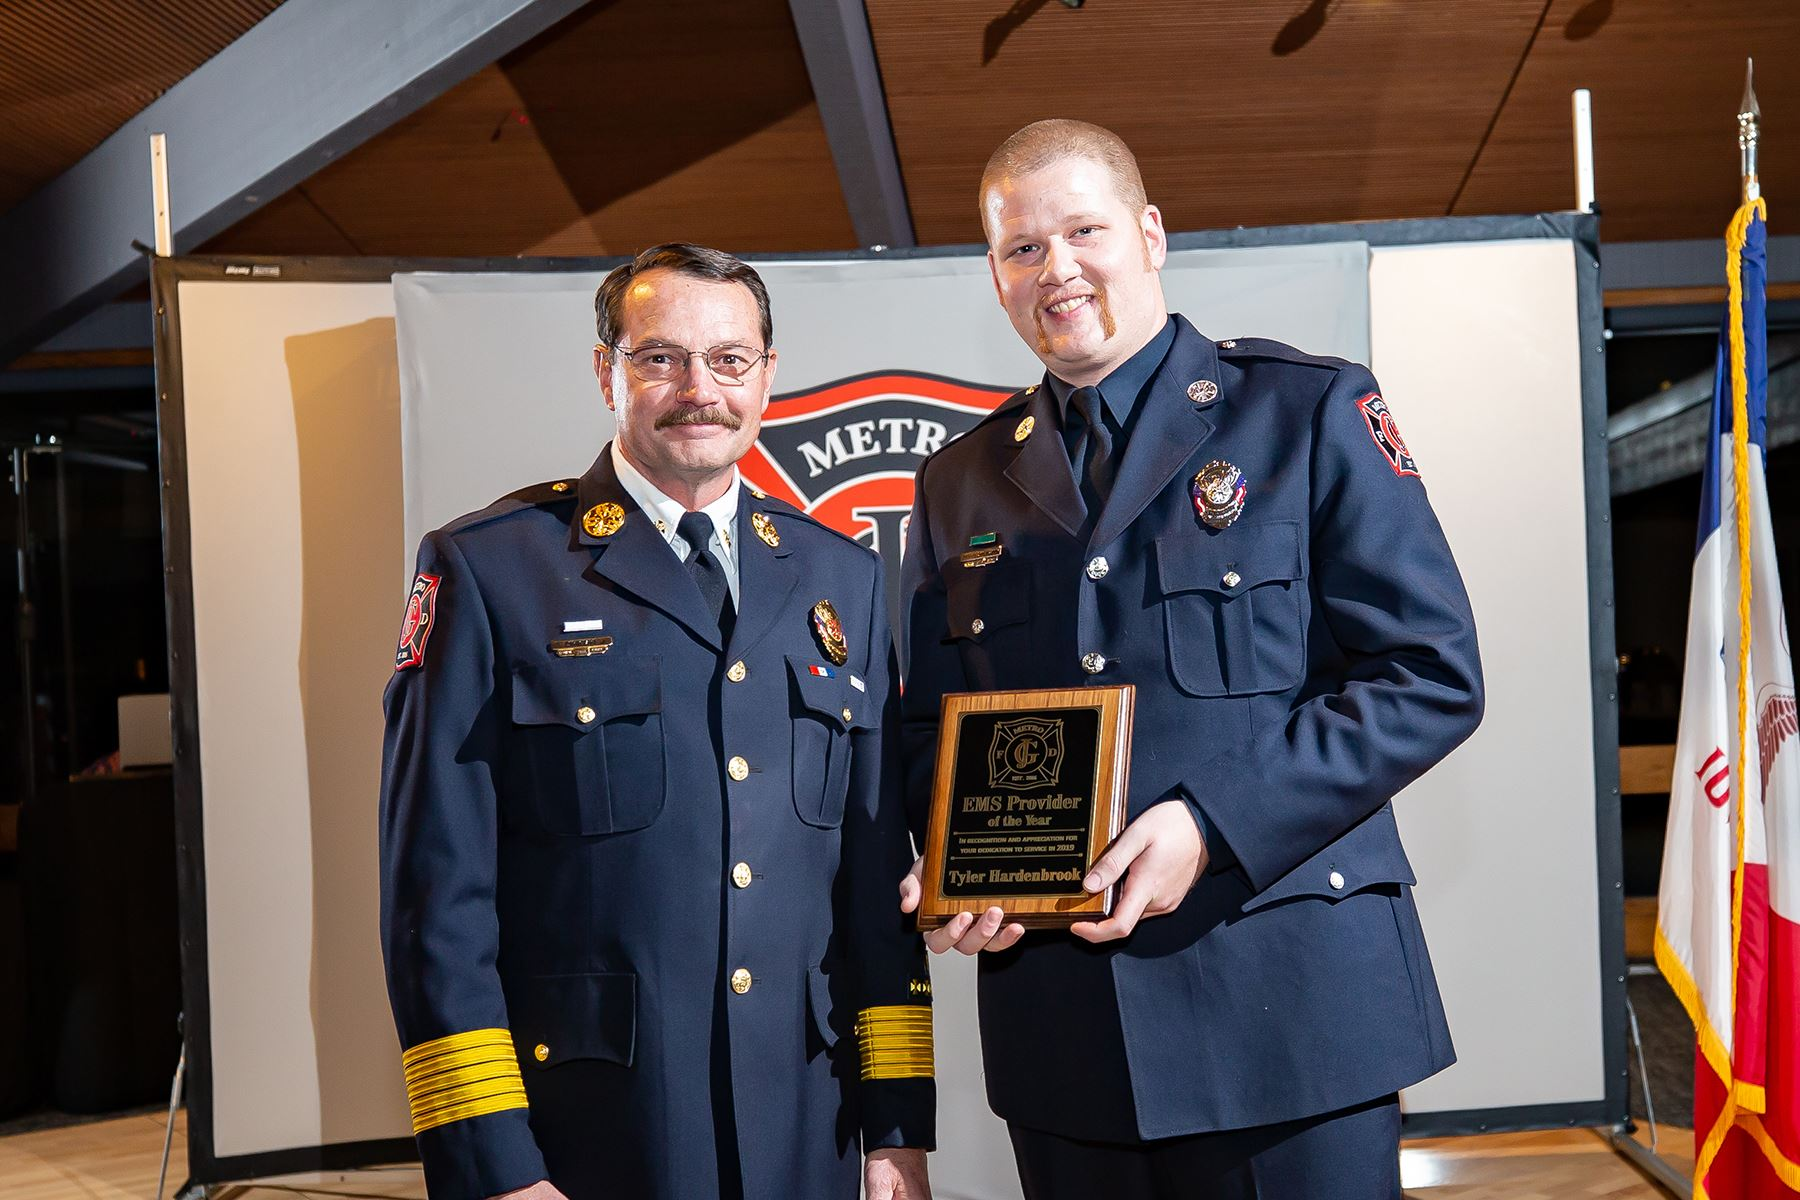 EMS Provider of the Year_Chief Clark_Tyler Hardenbrook_1_1800x1200